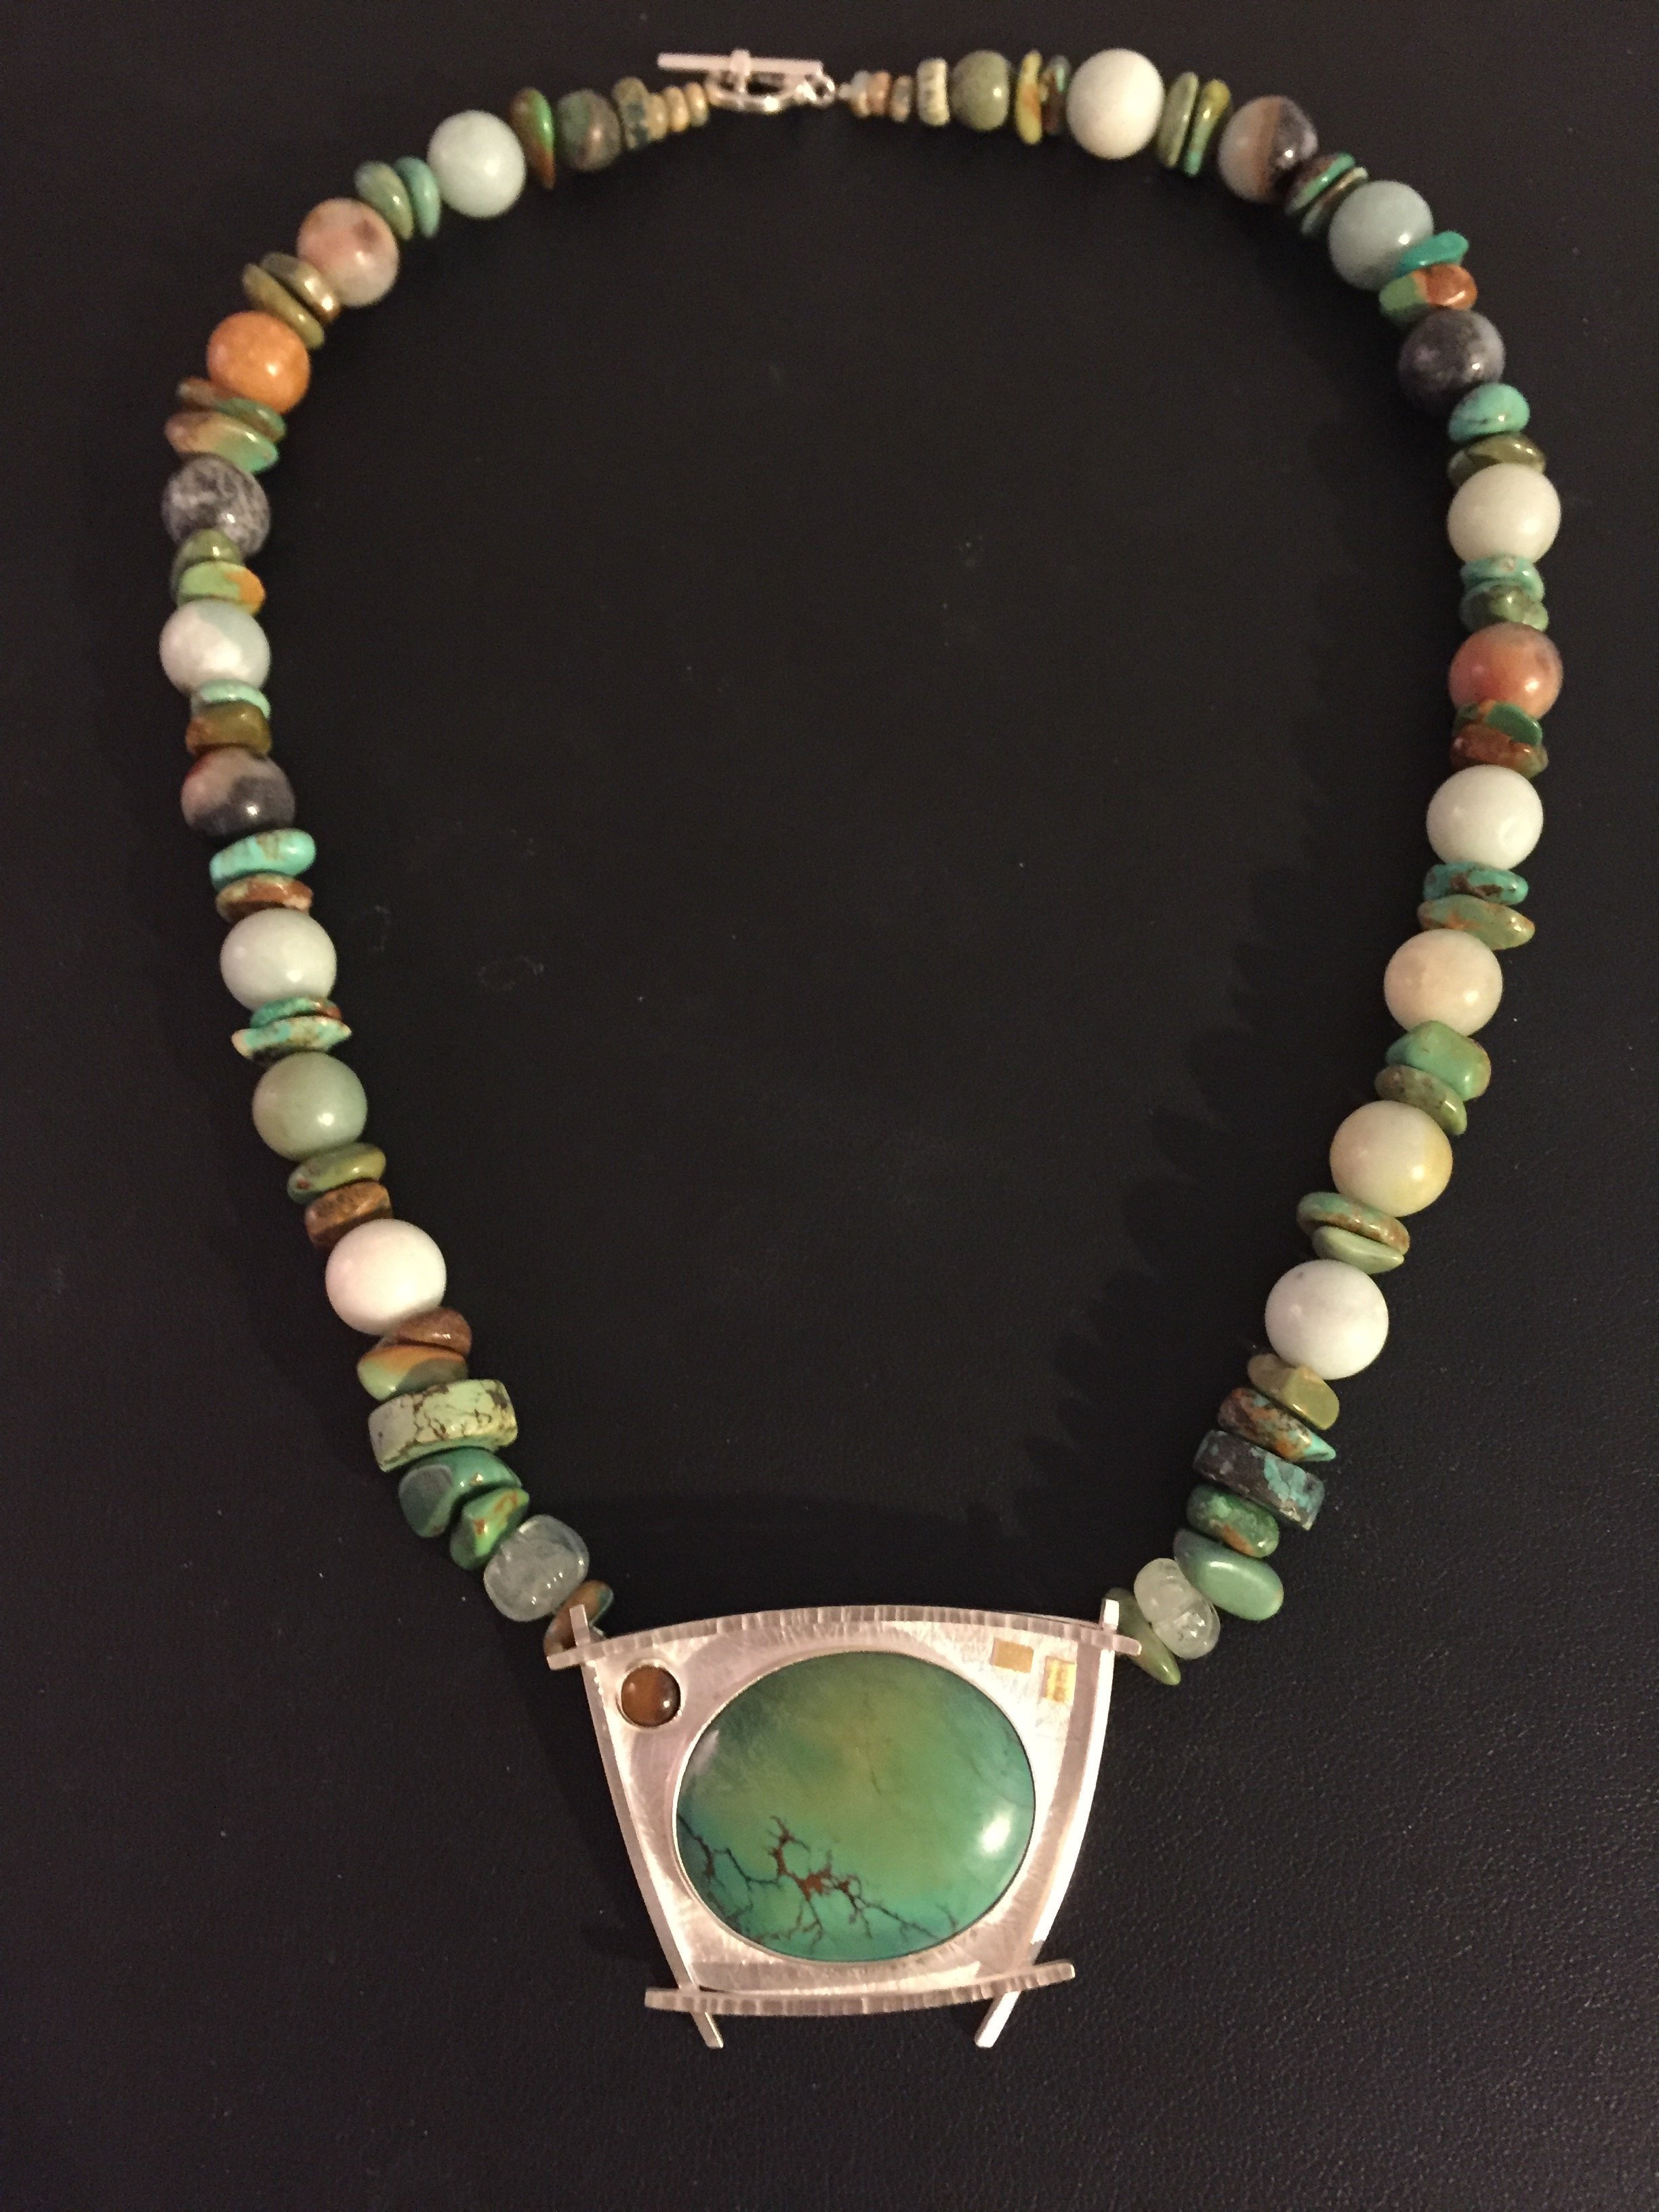 Turquoise Necklace by Linda Lewis